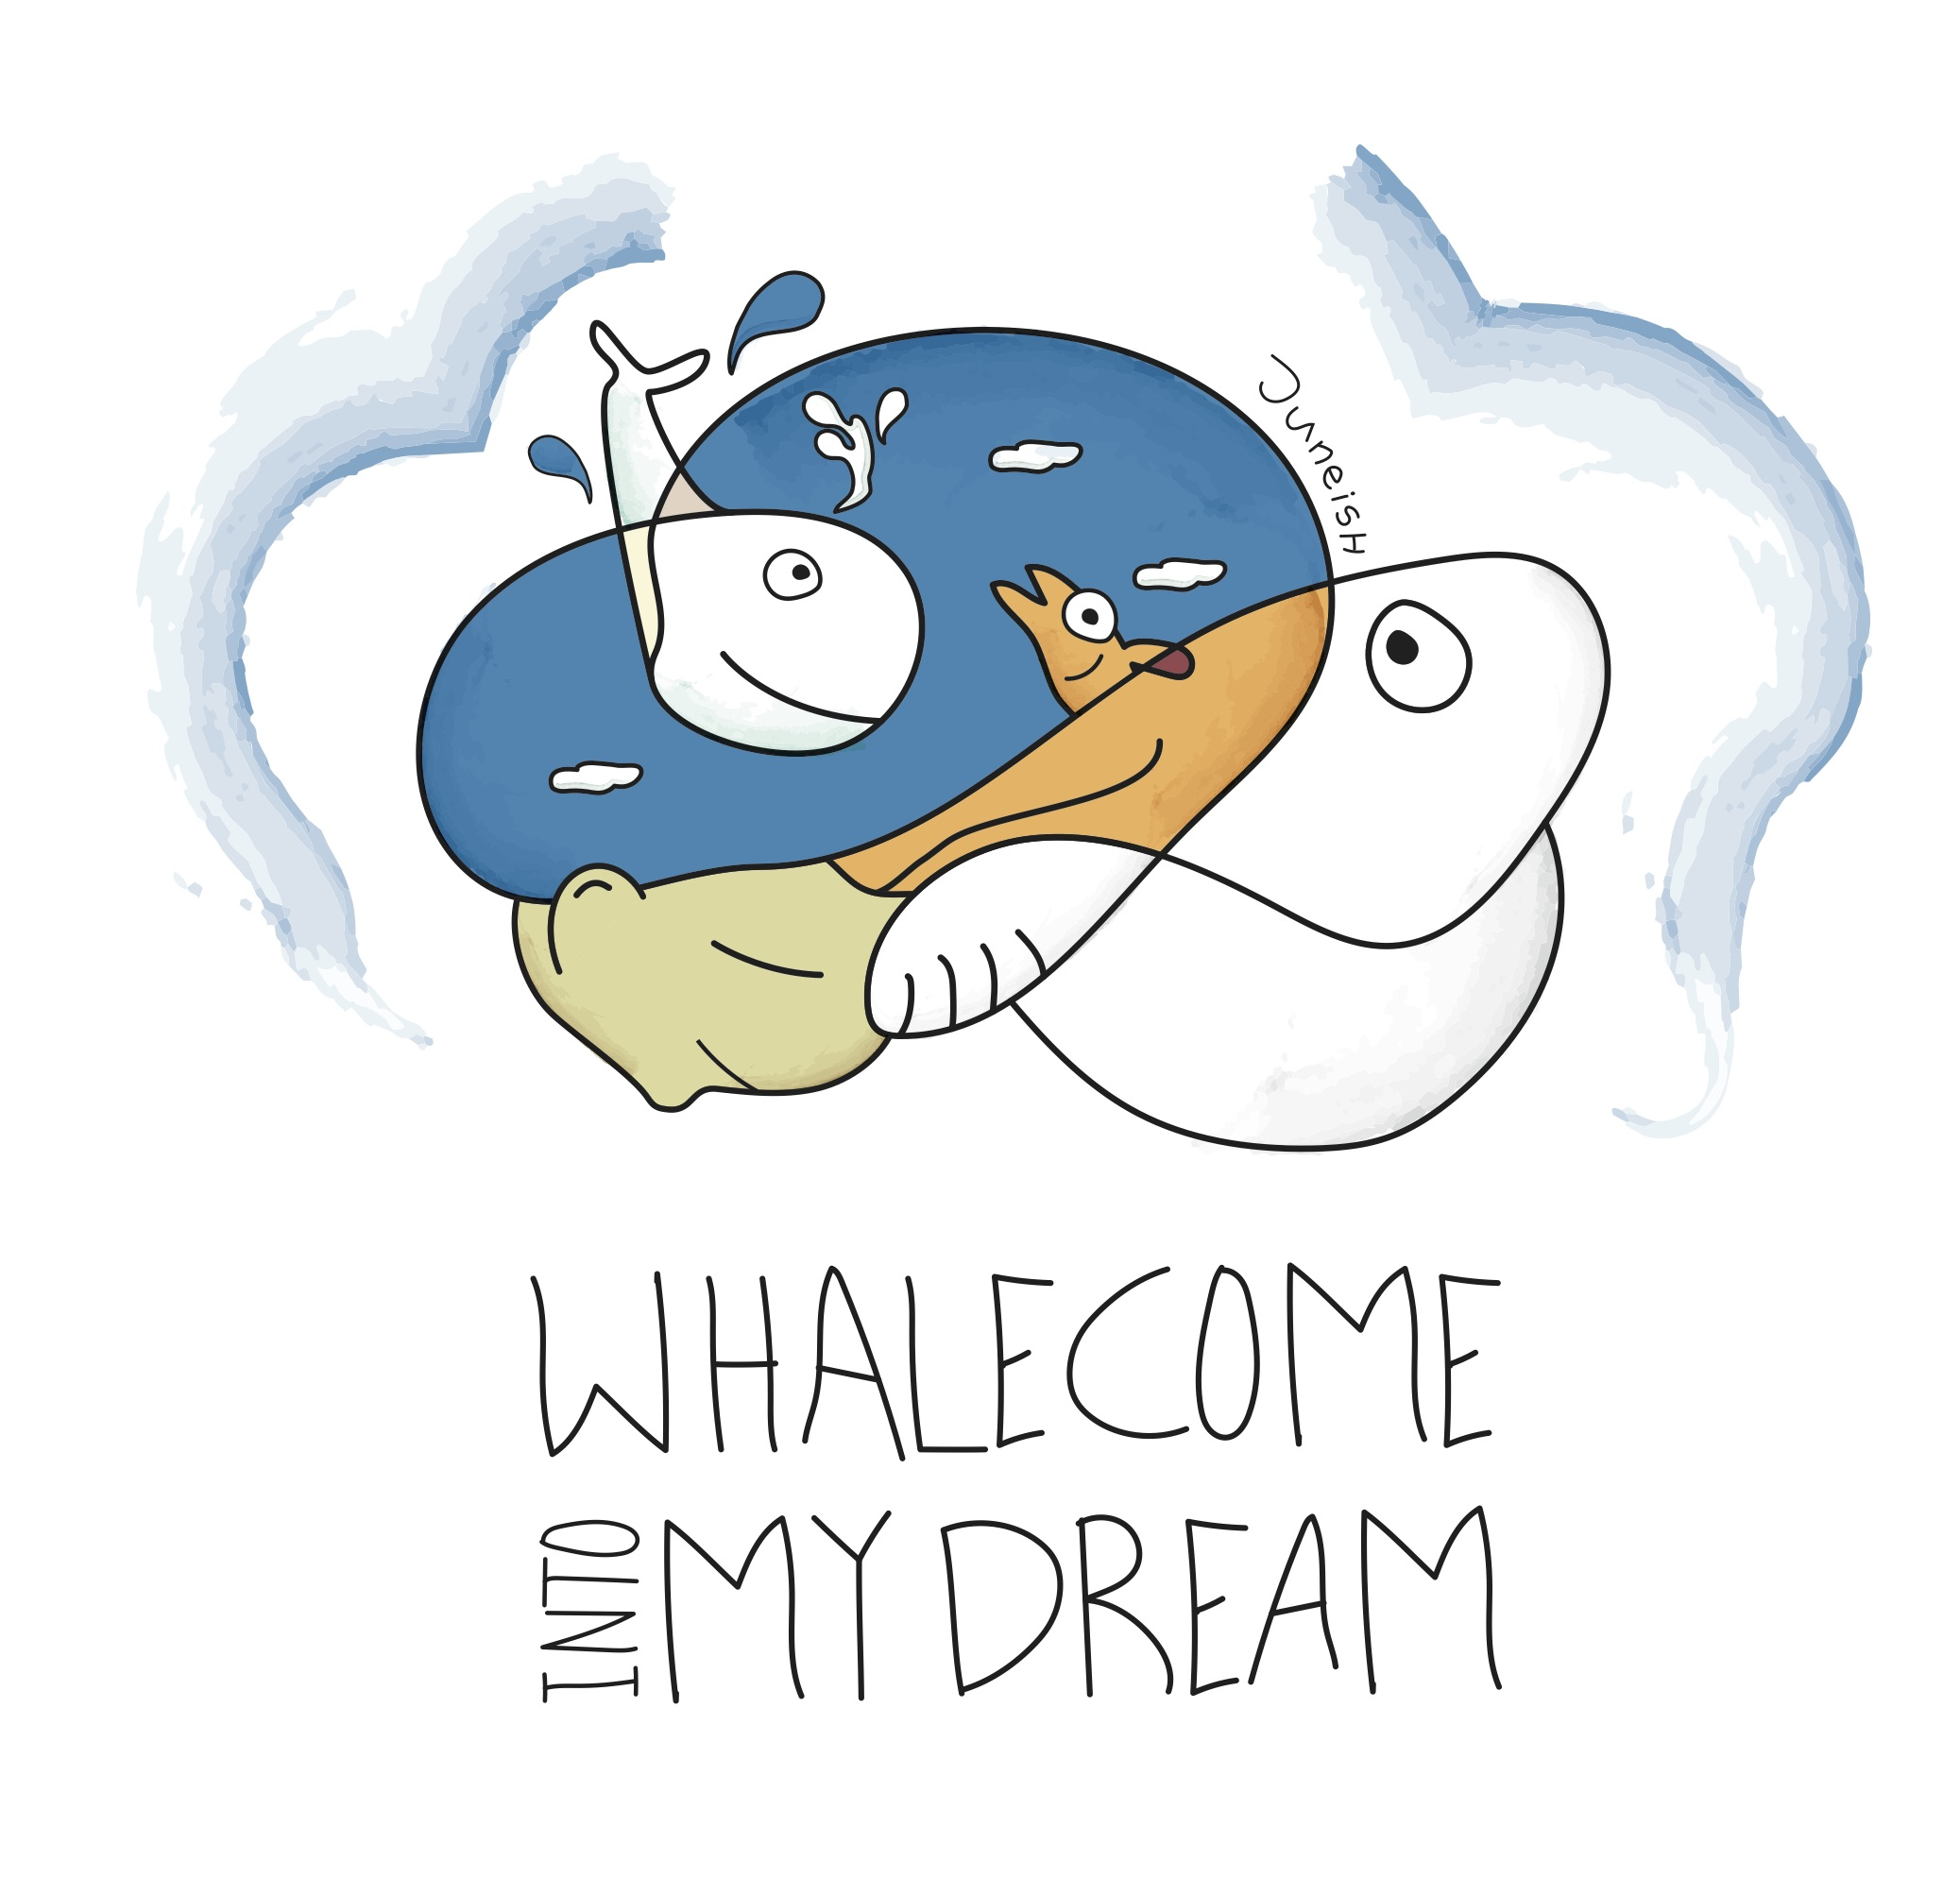 12_Whalecome into My Dream.jpg